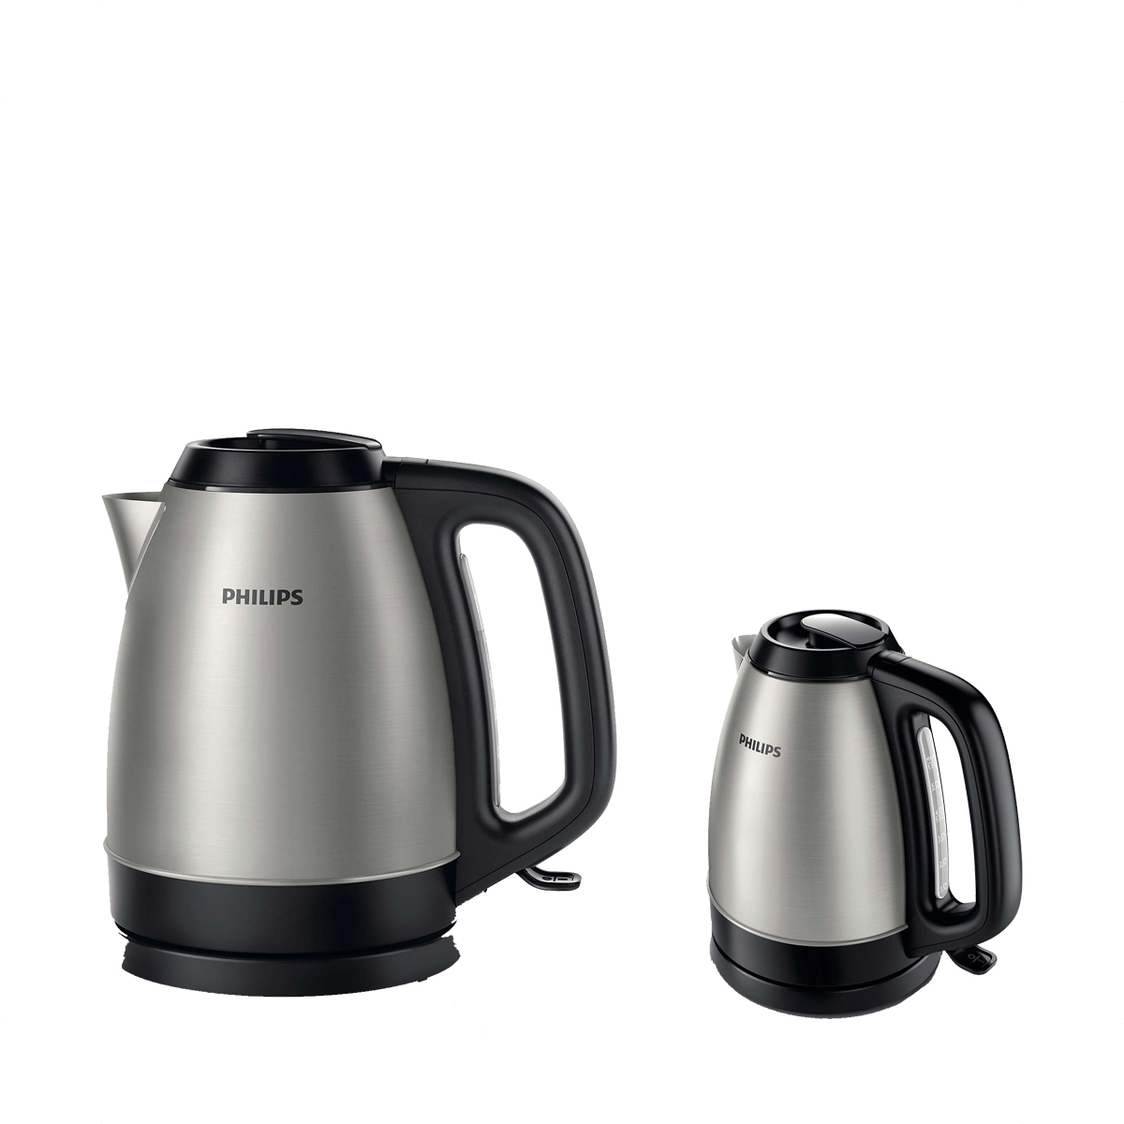 15L 2200W Daily Collection Kettle HD930526